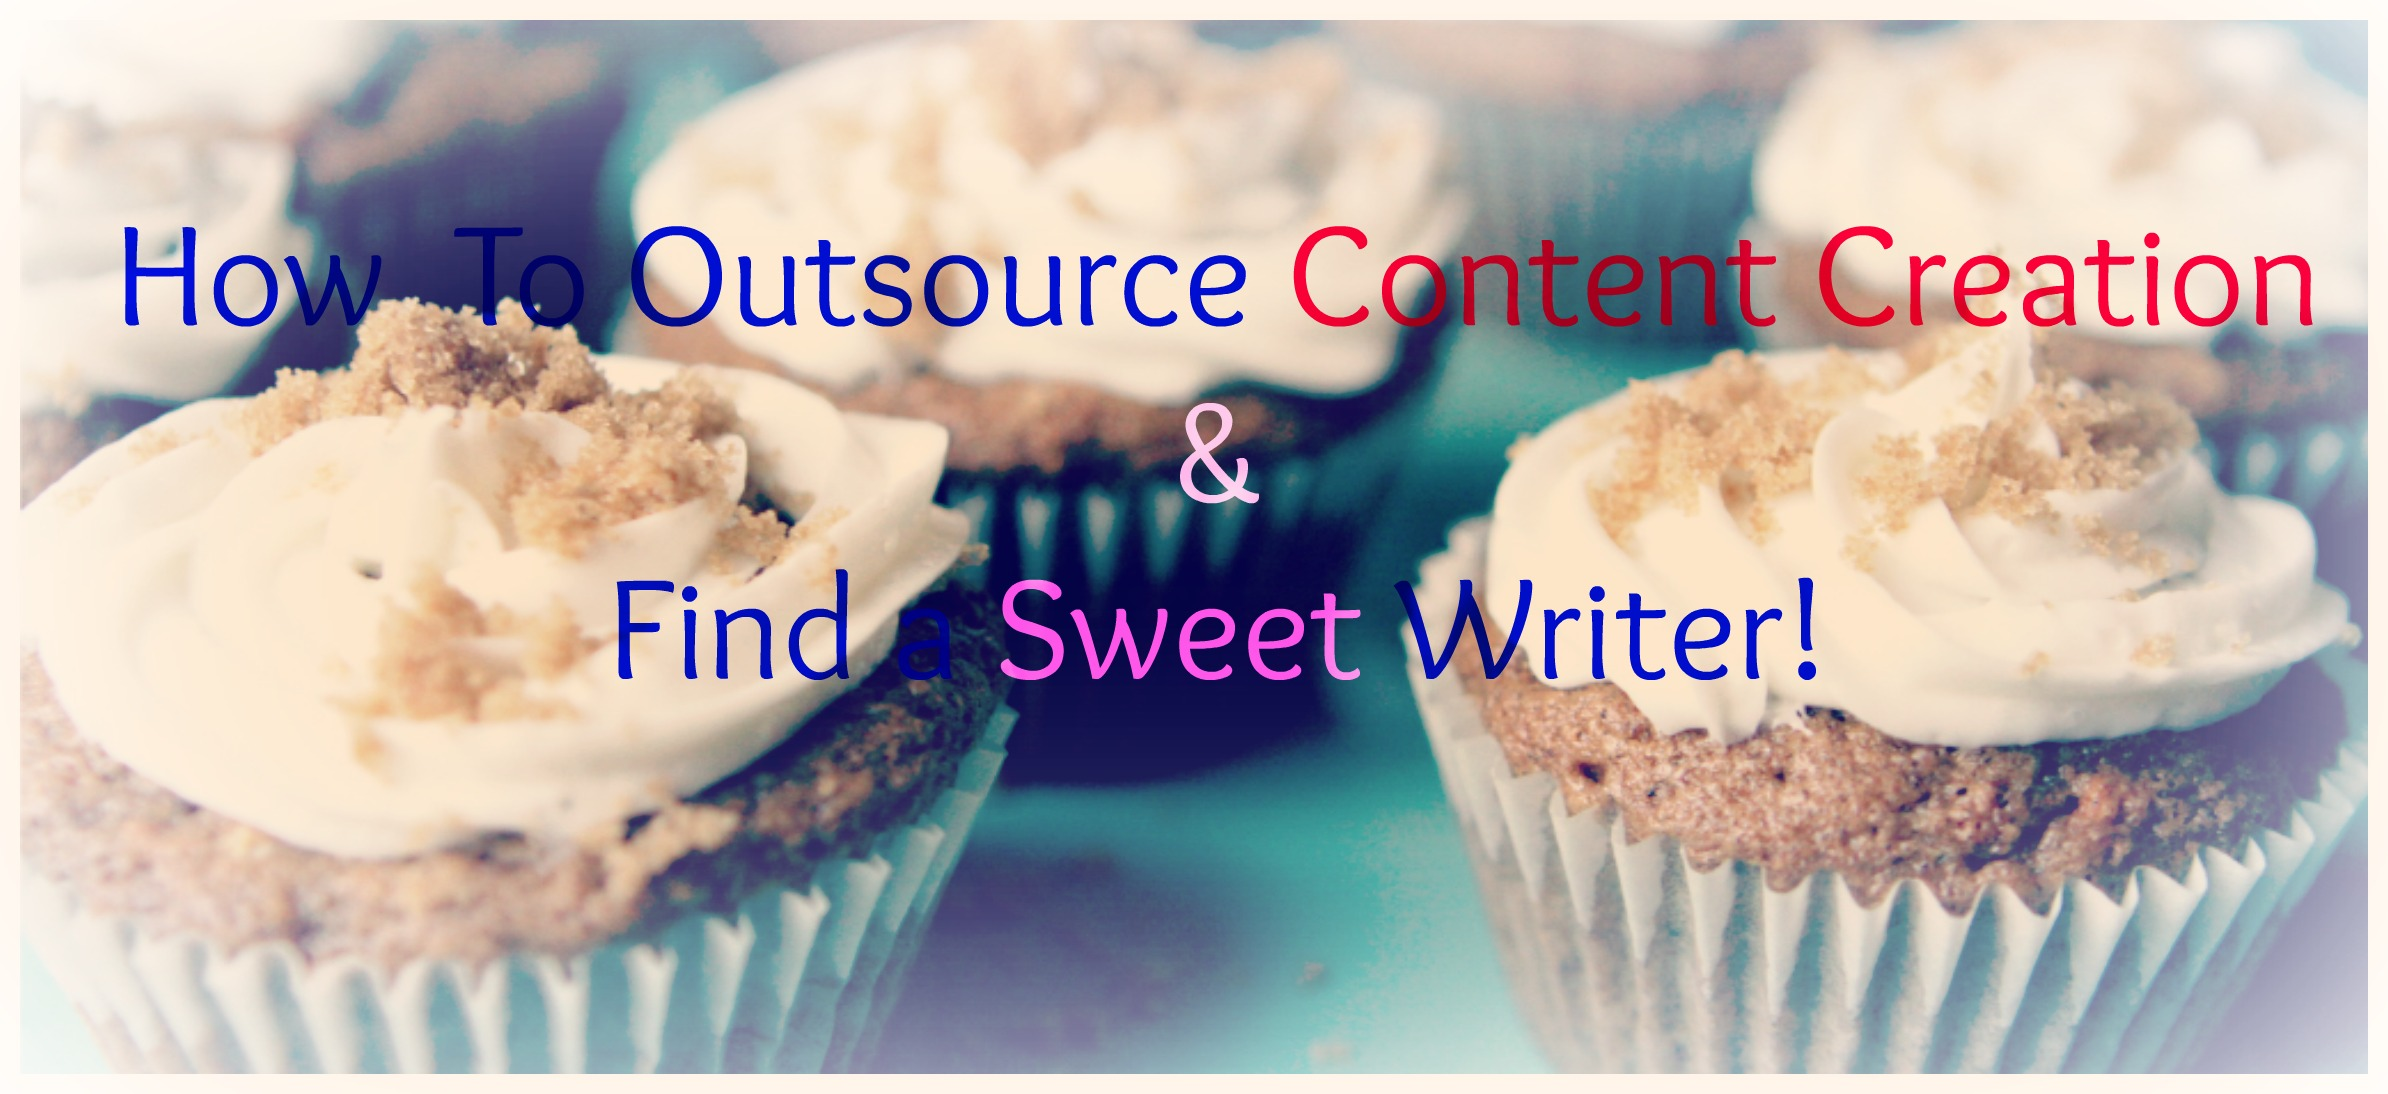 5 Rules For Outsourcing Your Content Creation